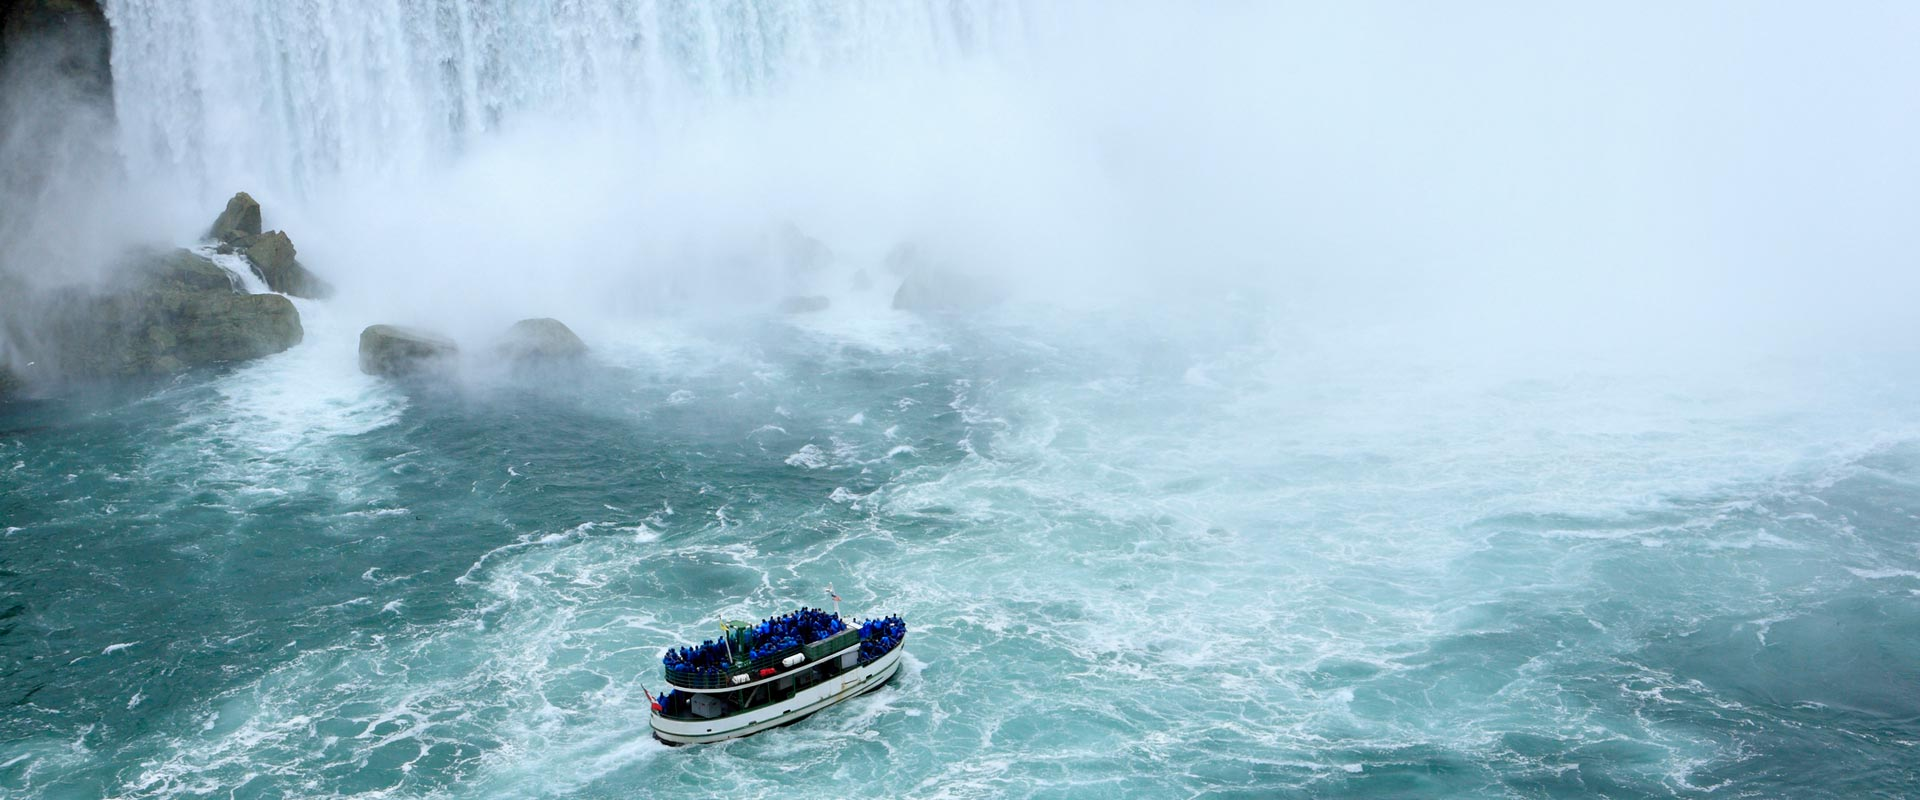 Is There A Maid Of The Mist On The Canadian Side